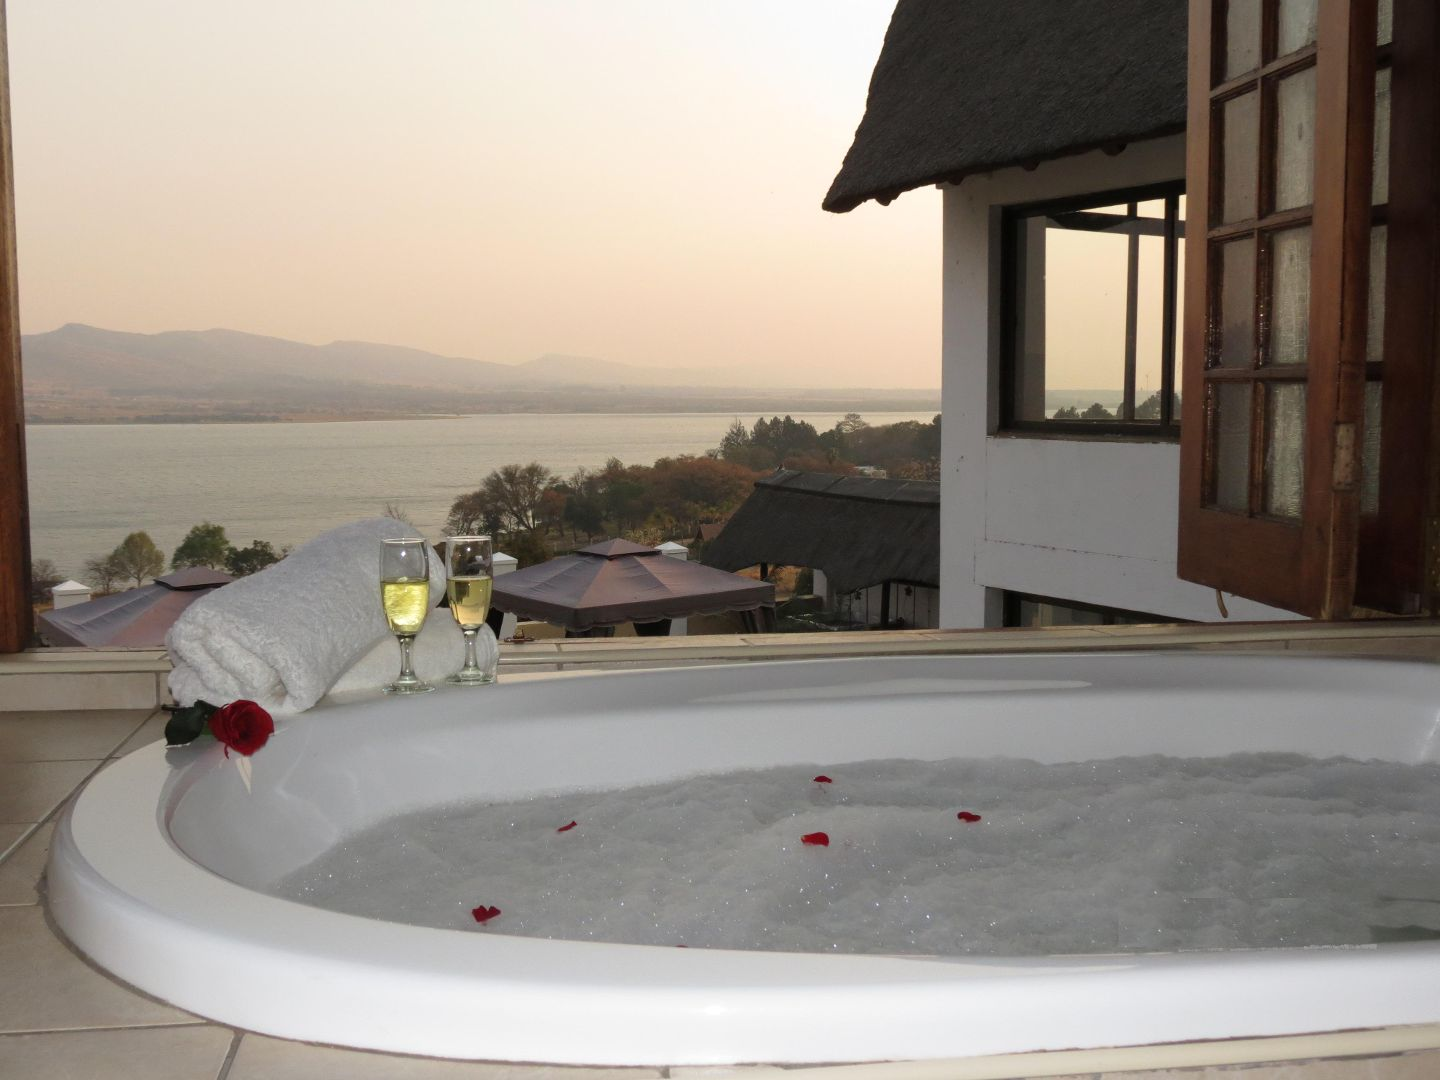 Galagos Lodge Hartbeespoort South Africa